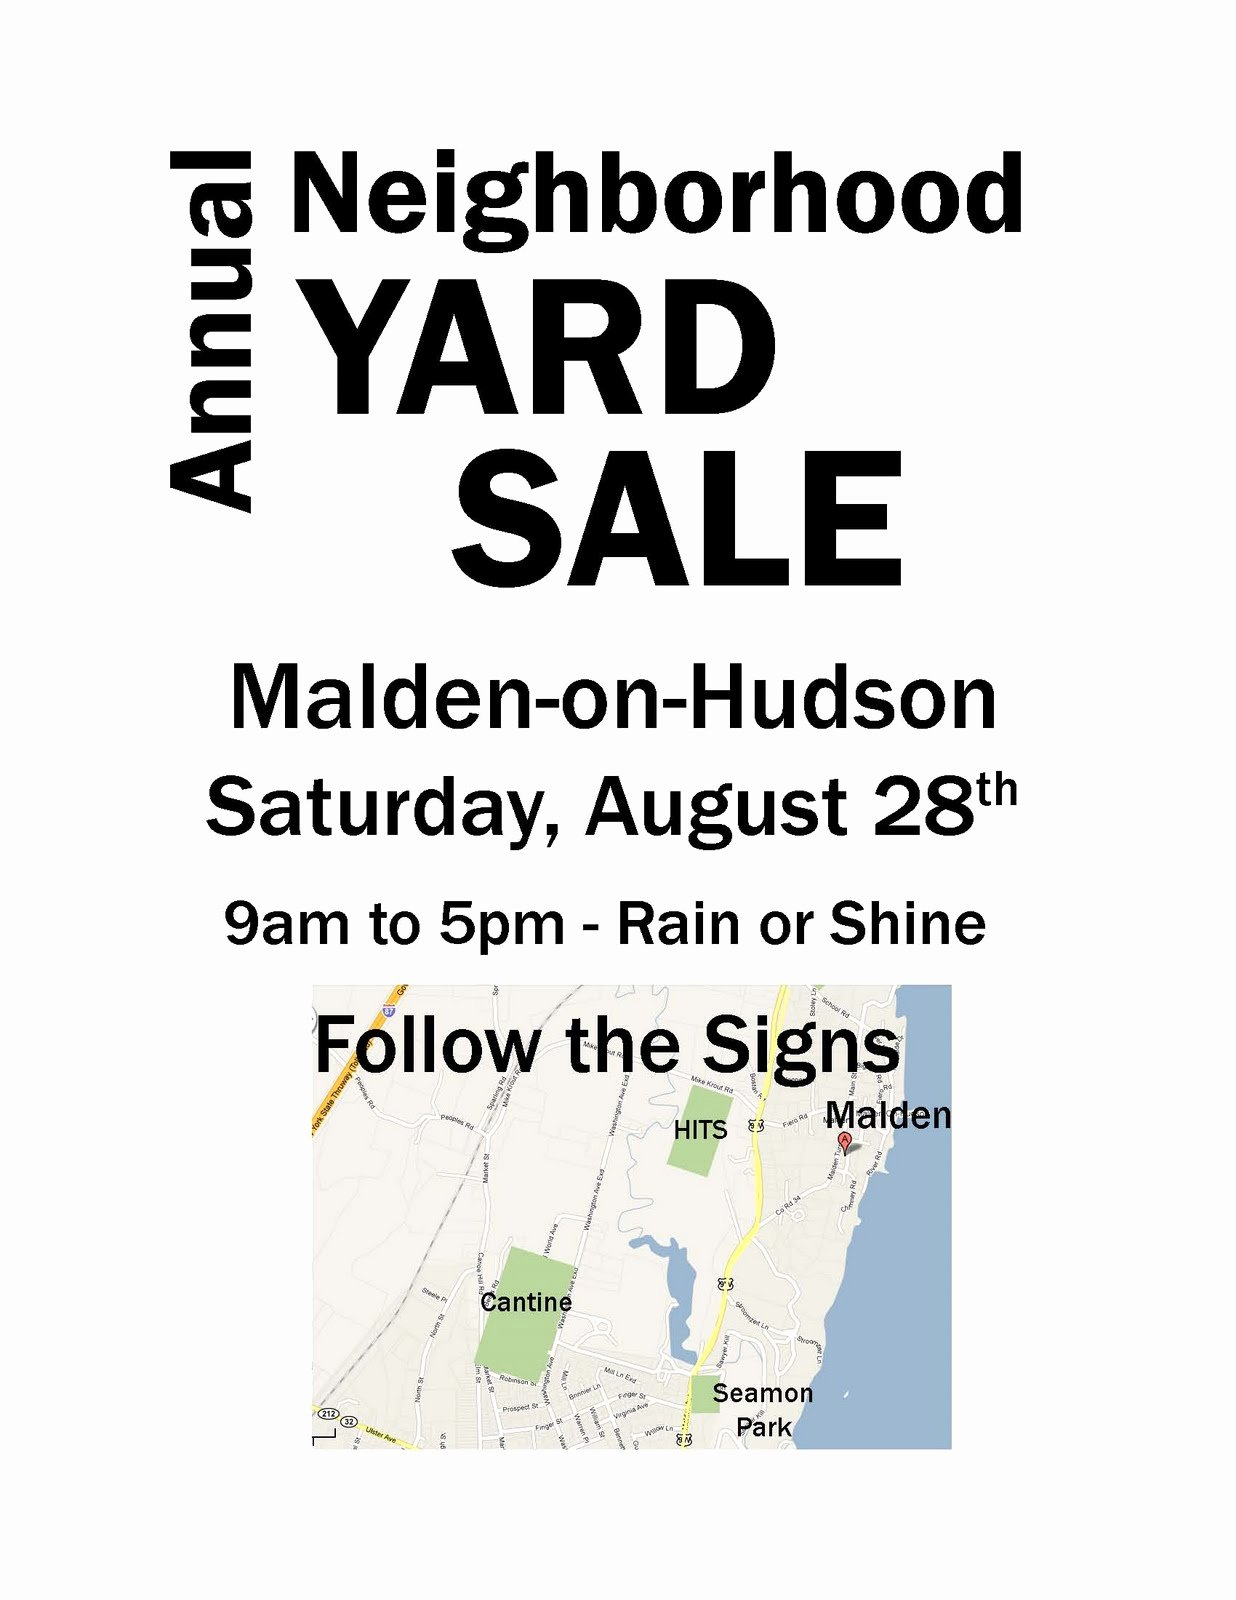 Yard Sale Flyer Template Luxury Malden Yard Sale